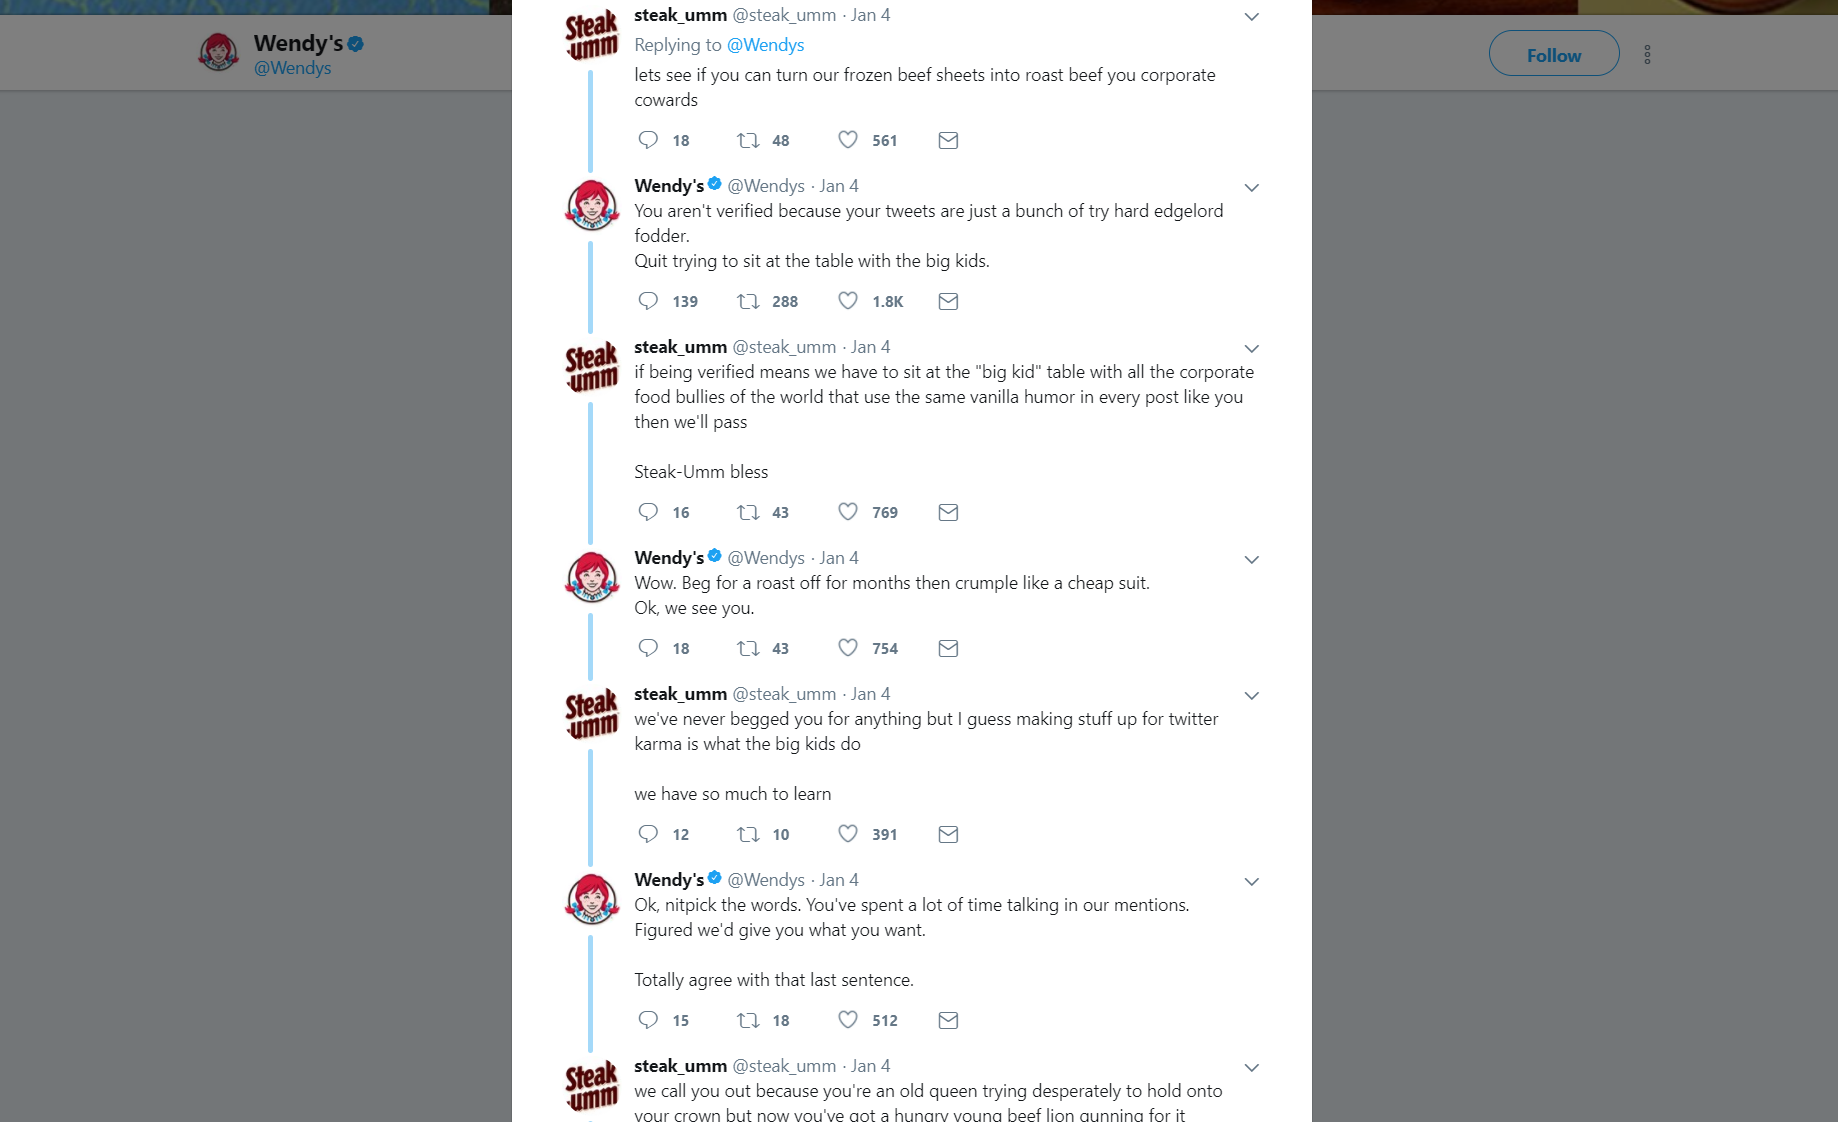 Wendy's and Steak-Umm, fighting on Twitter.